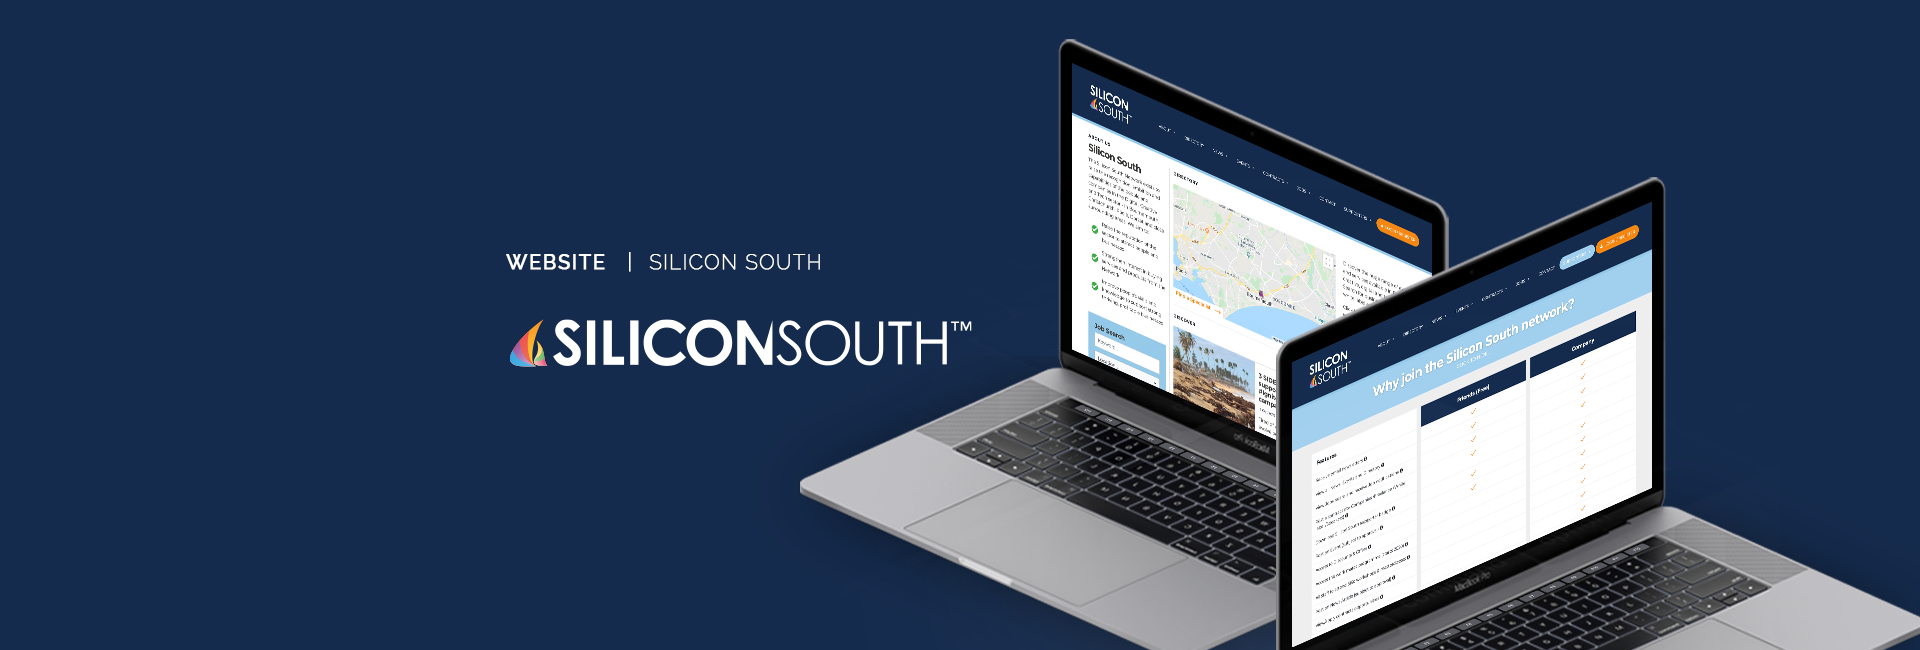 Digital Storm launch new creative, tech and digital sector directory website for Silicon South